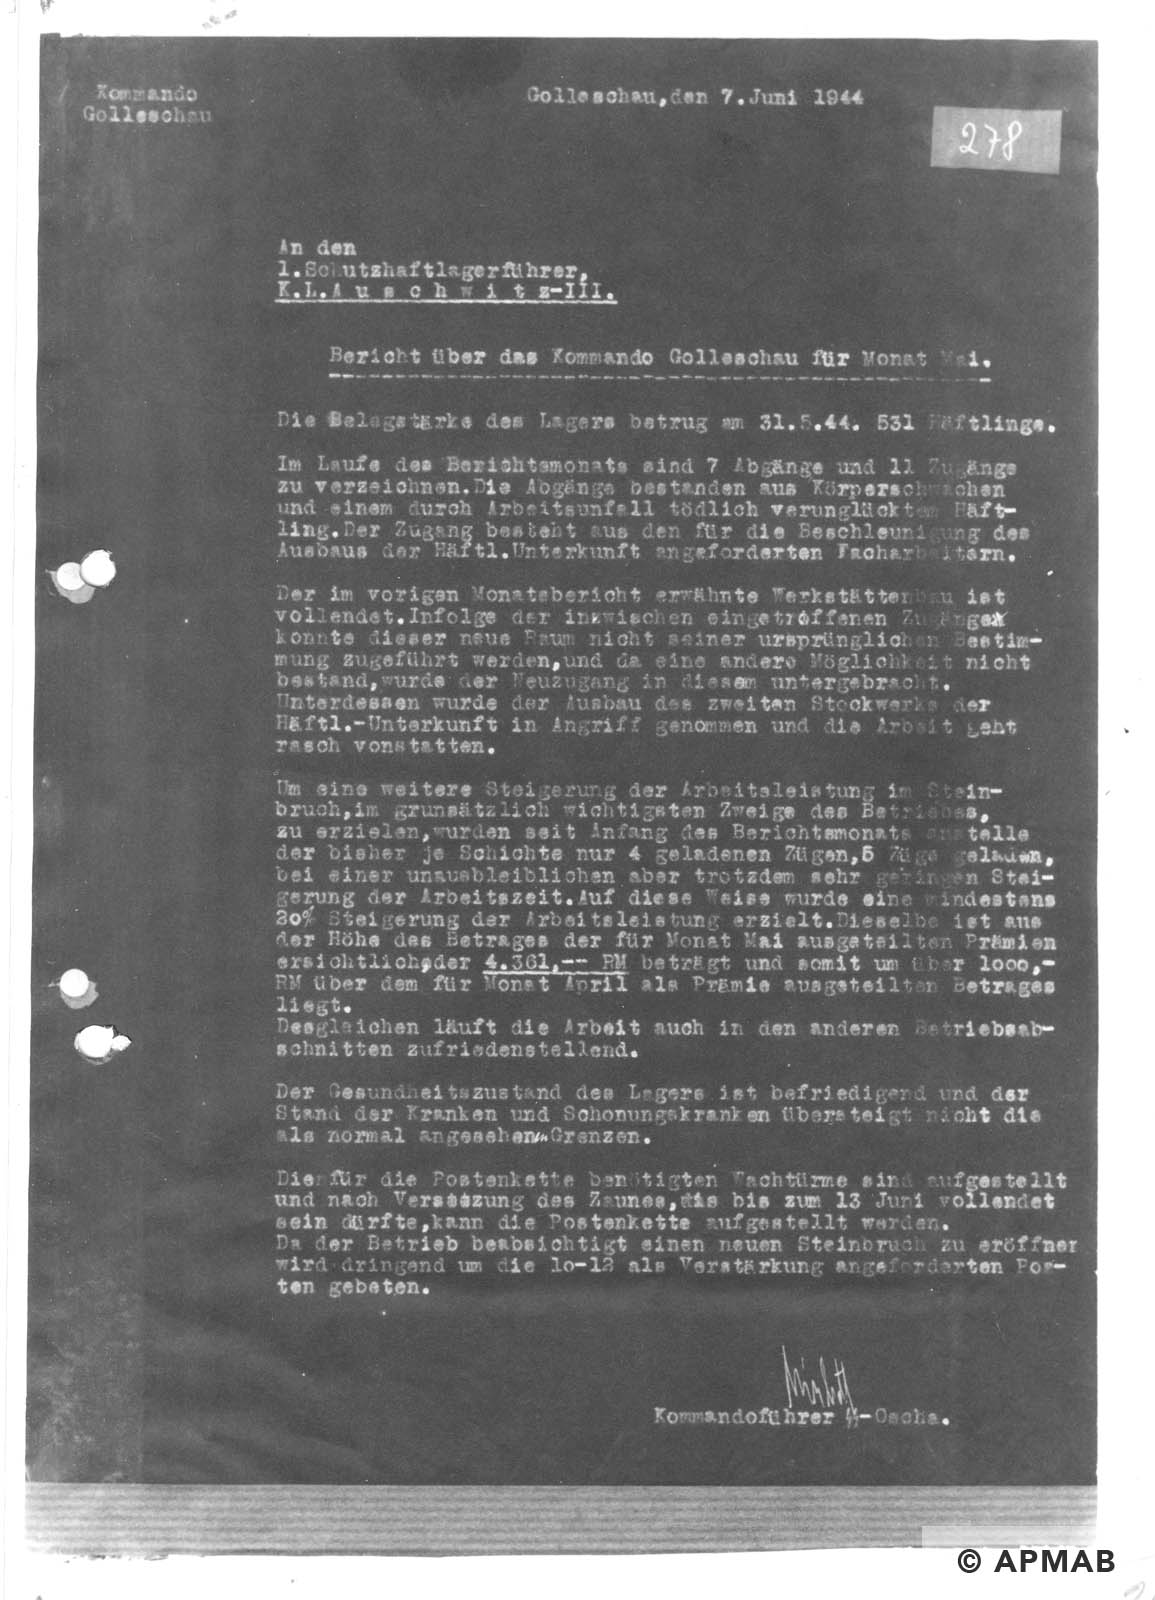 Report on Golleschau sub camp May 1944 APMAB nr inw. 30523 str. 24